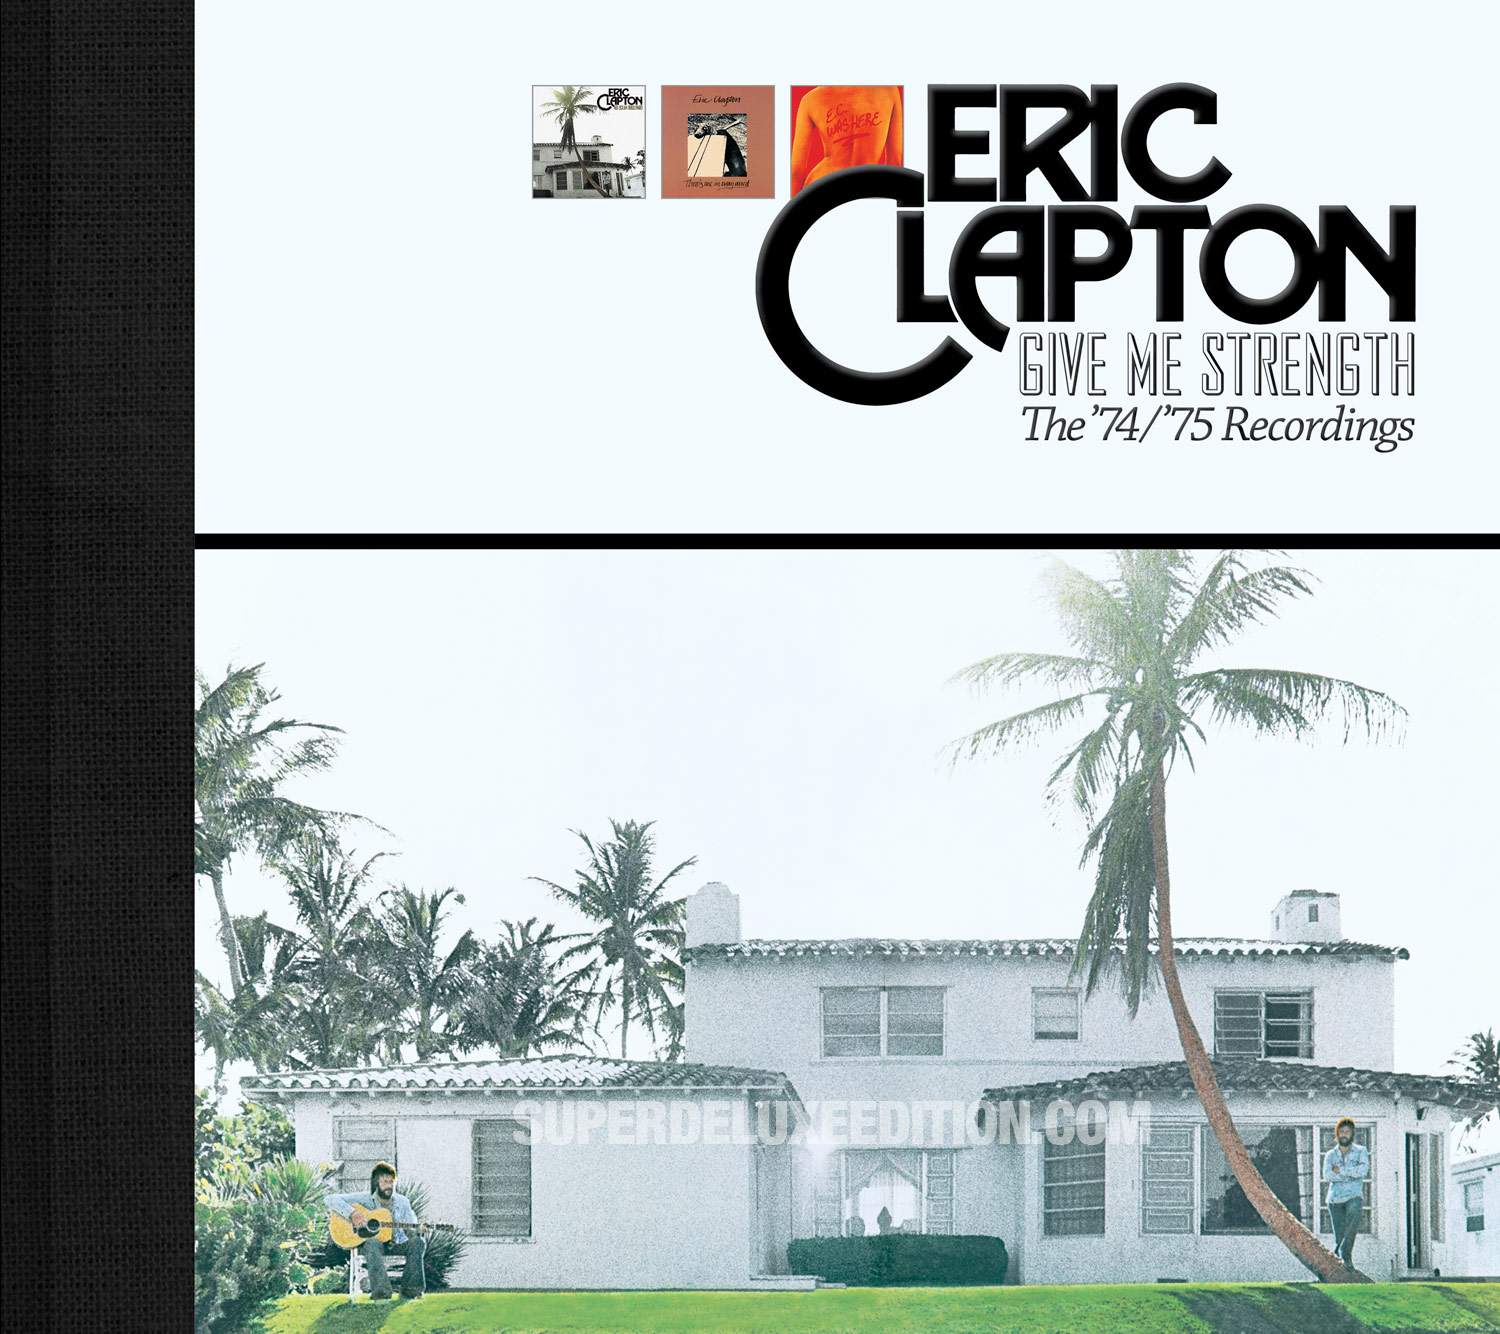 Eric Clapton / Give Me Strength: The 1974 / 1975 Recordings box set 5CD + Blu-ray Audio